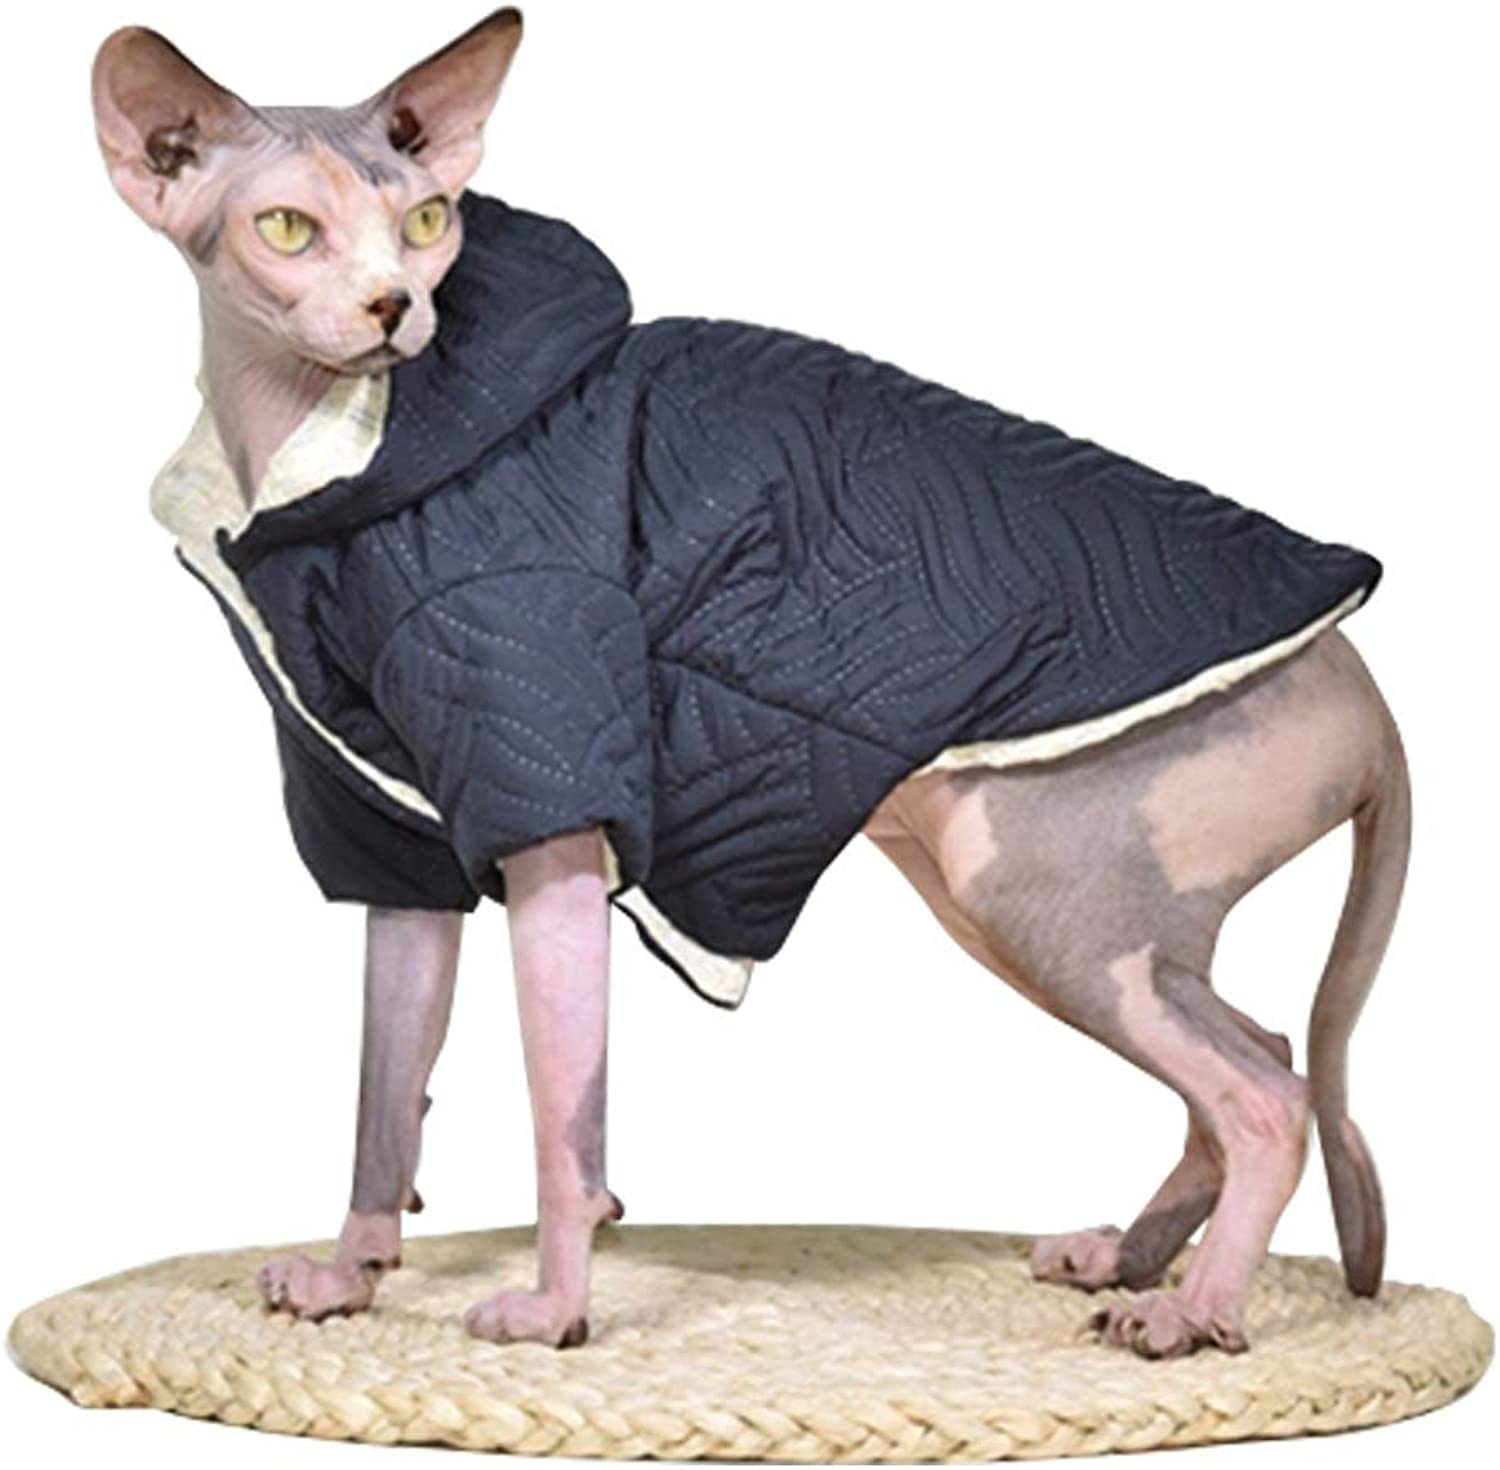 DENTRUN Hairless Cats Hooded Cotton Jacket Cat Coat Cat Designer Winter Warm Clothes, Coat Best Hairless Cat's Adorable Clothes Cat's Pajamas Jumpsuit Cat